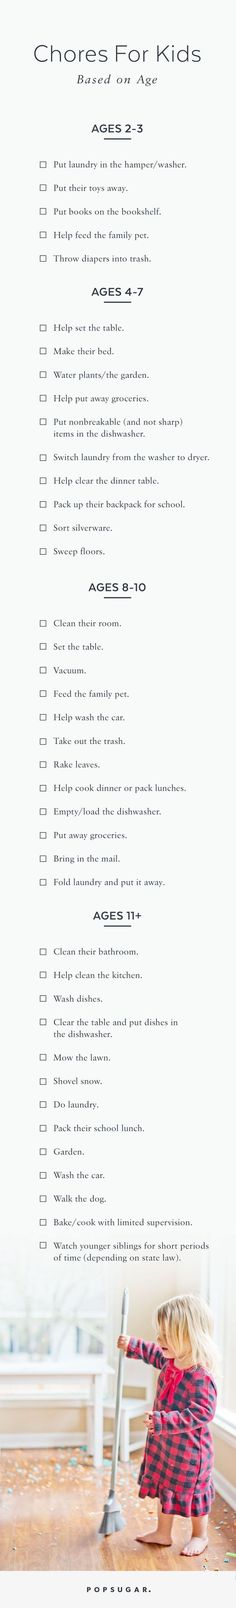 Pin for Later: These Are the Chores Your Child Should Be Doing This Year Based on Their Age